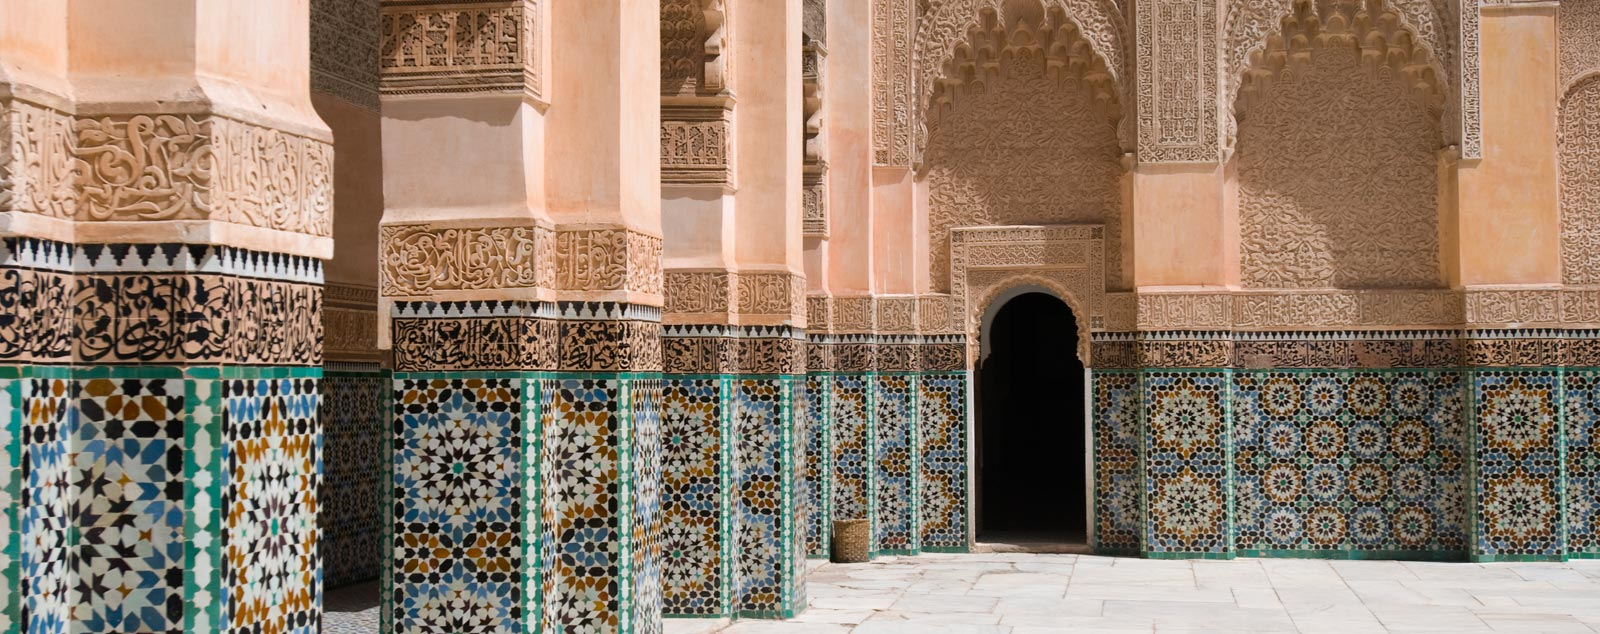 Moroccan tiles on archways